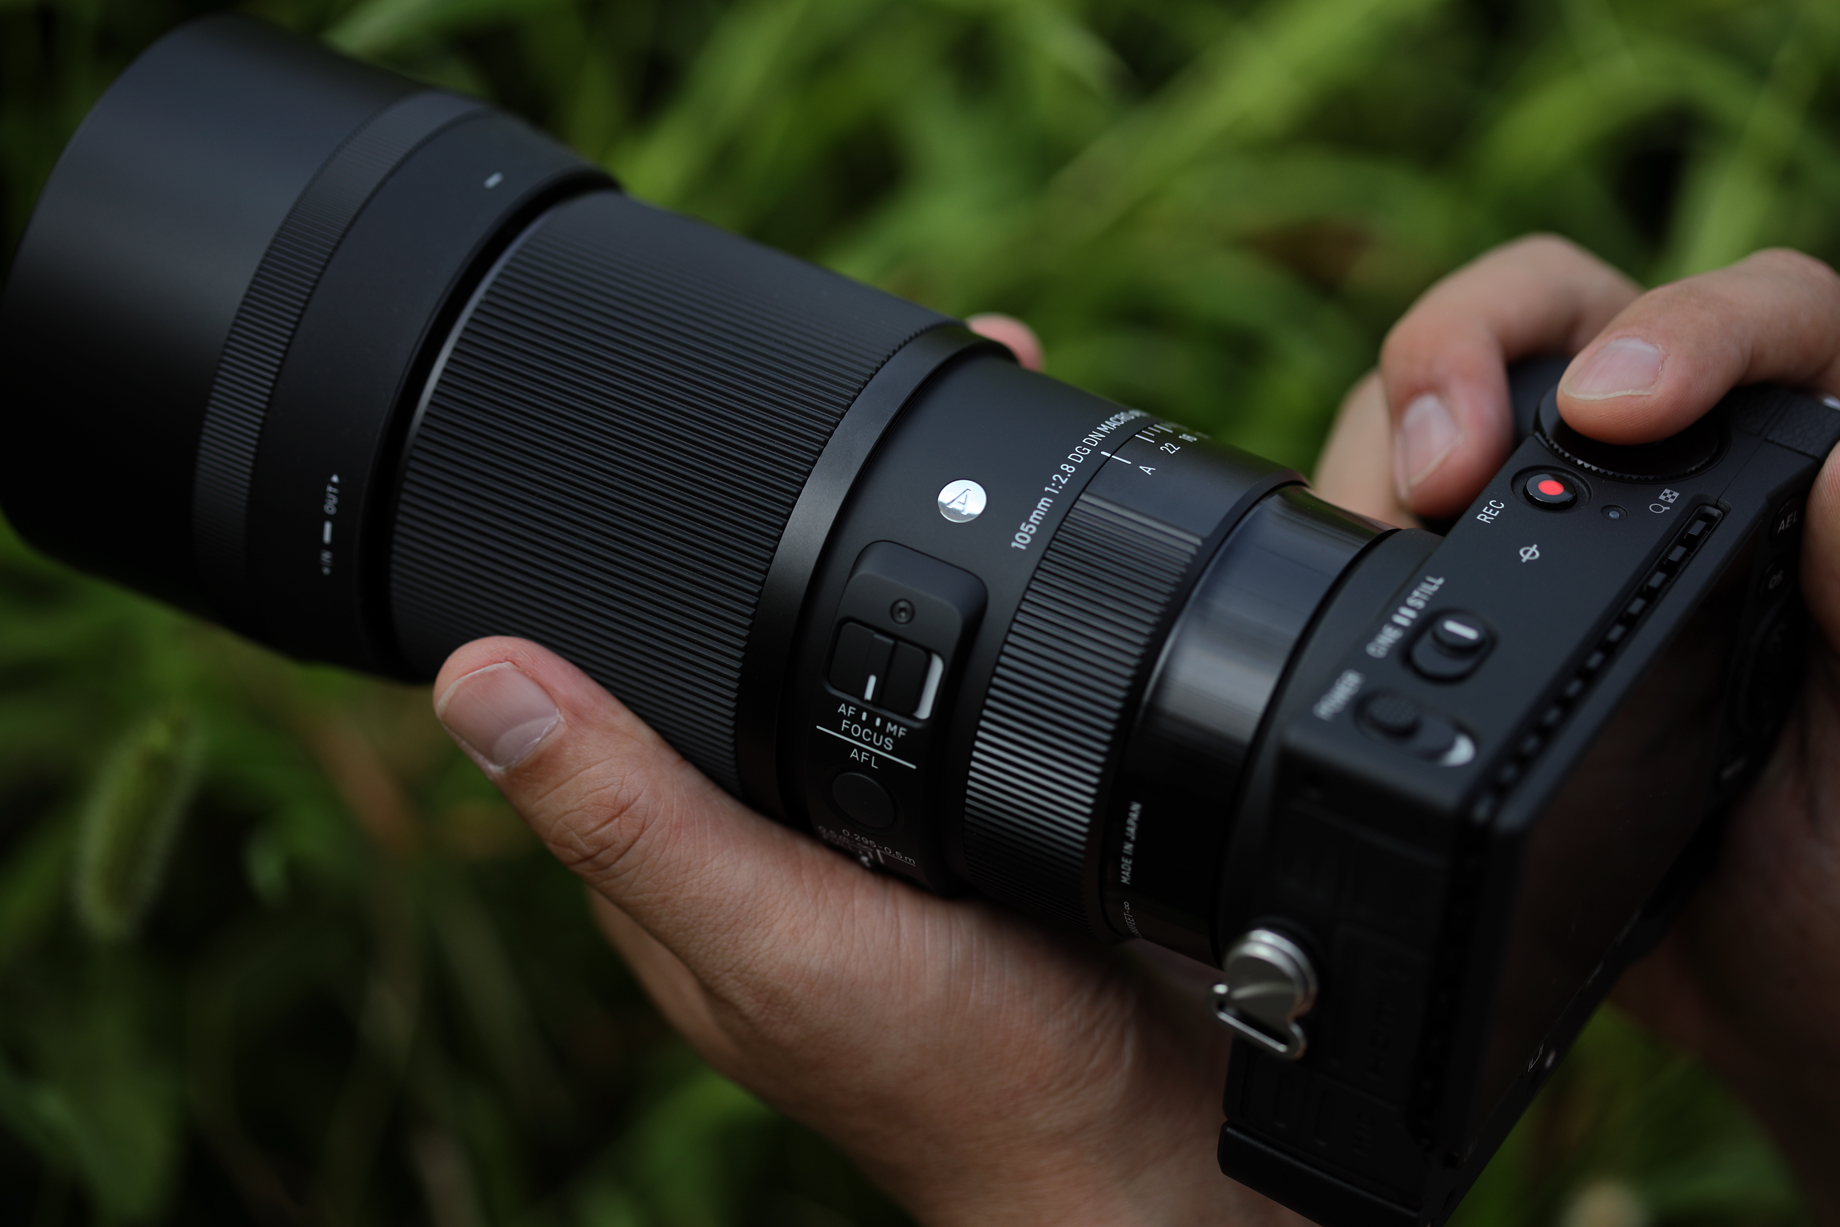 Sigma 105mm F2.8 DG DN Macro Art Review